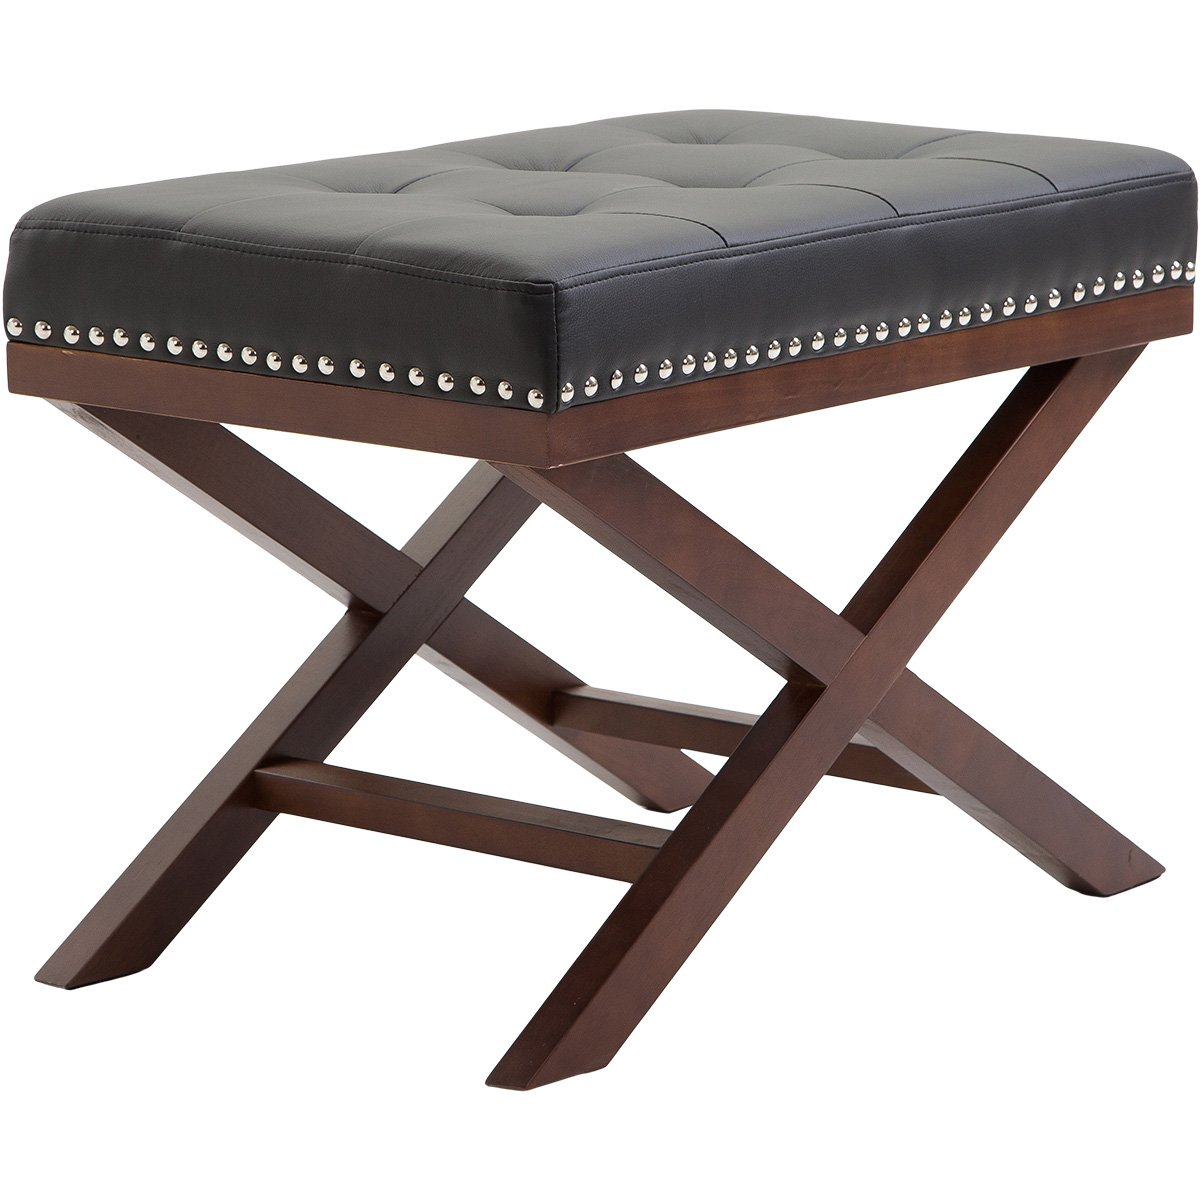 Harper&Bright Designs Upholstered Tufted X Bench Ottoman with Nailhead Detail and Solid Wood Legs (Black)